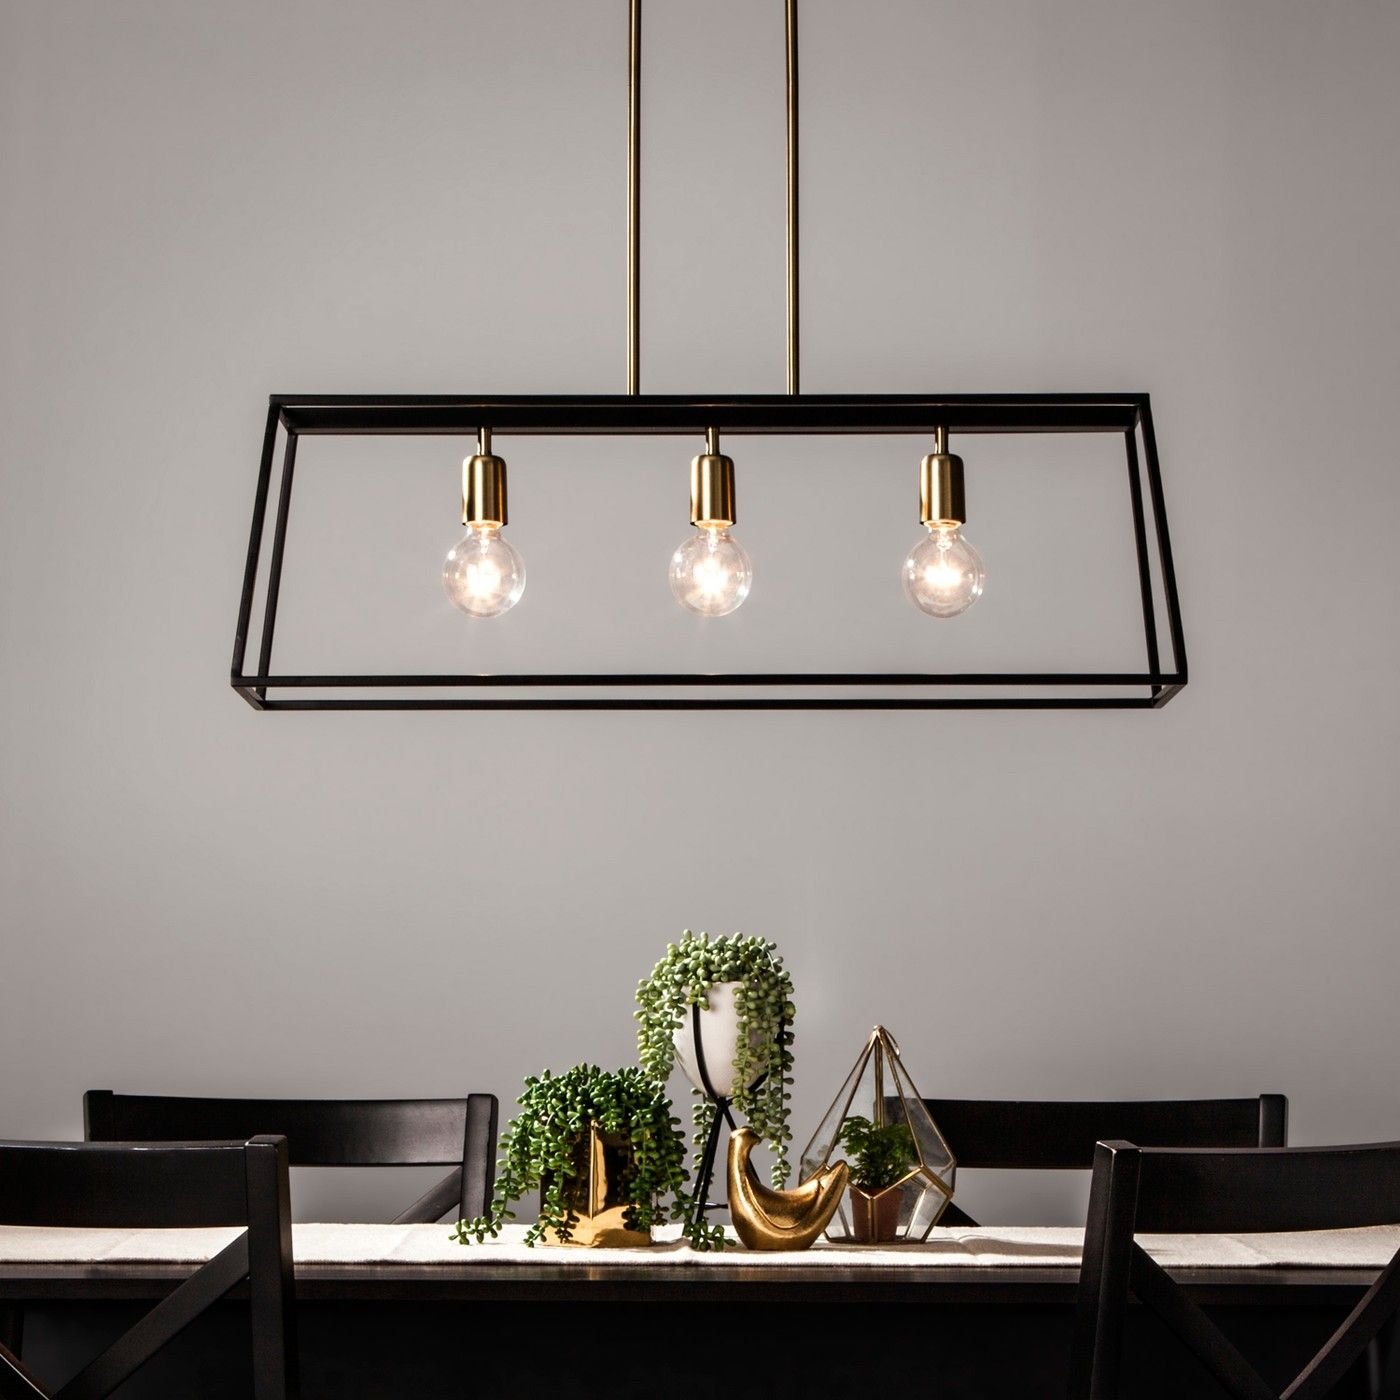 3 Light Pendant Modern Farmhouse Ceiling Light Black Threshold